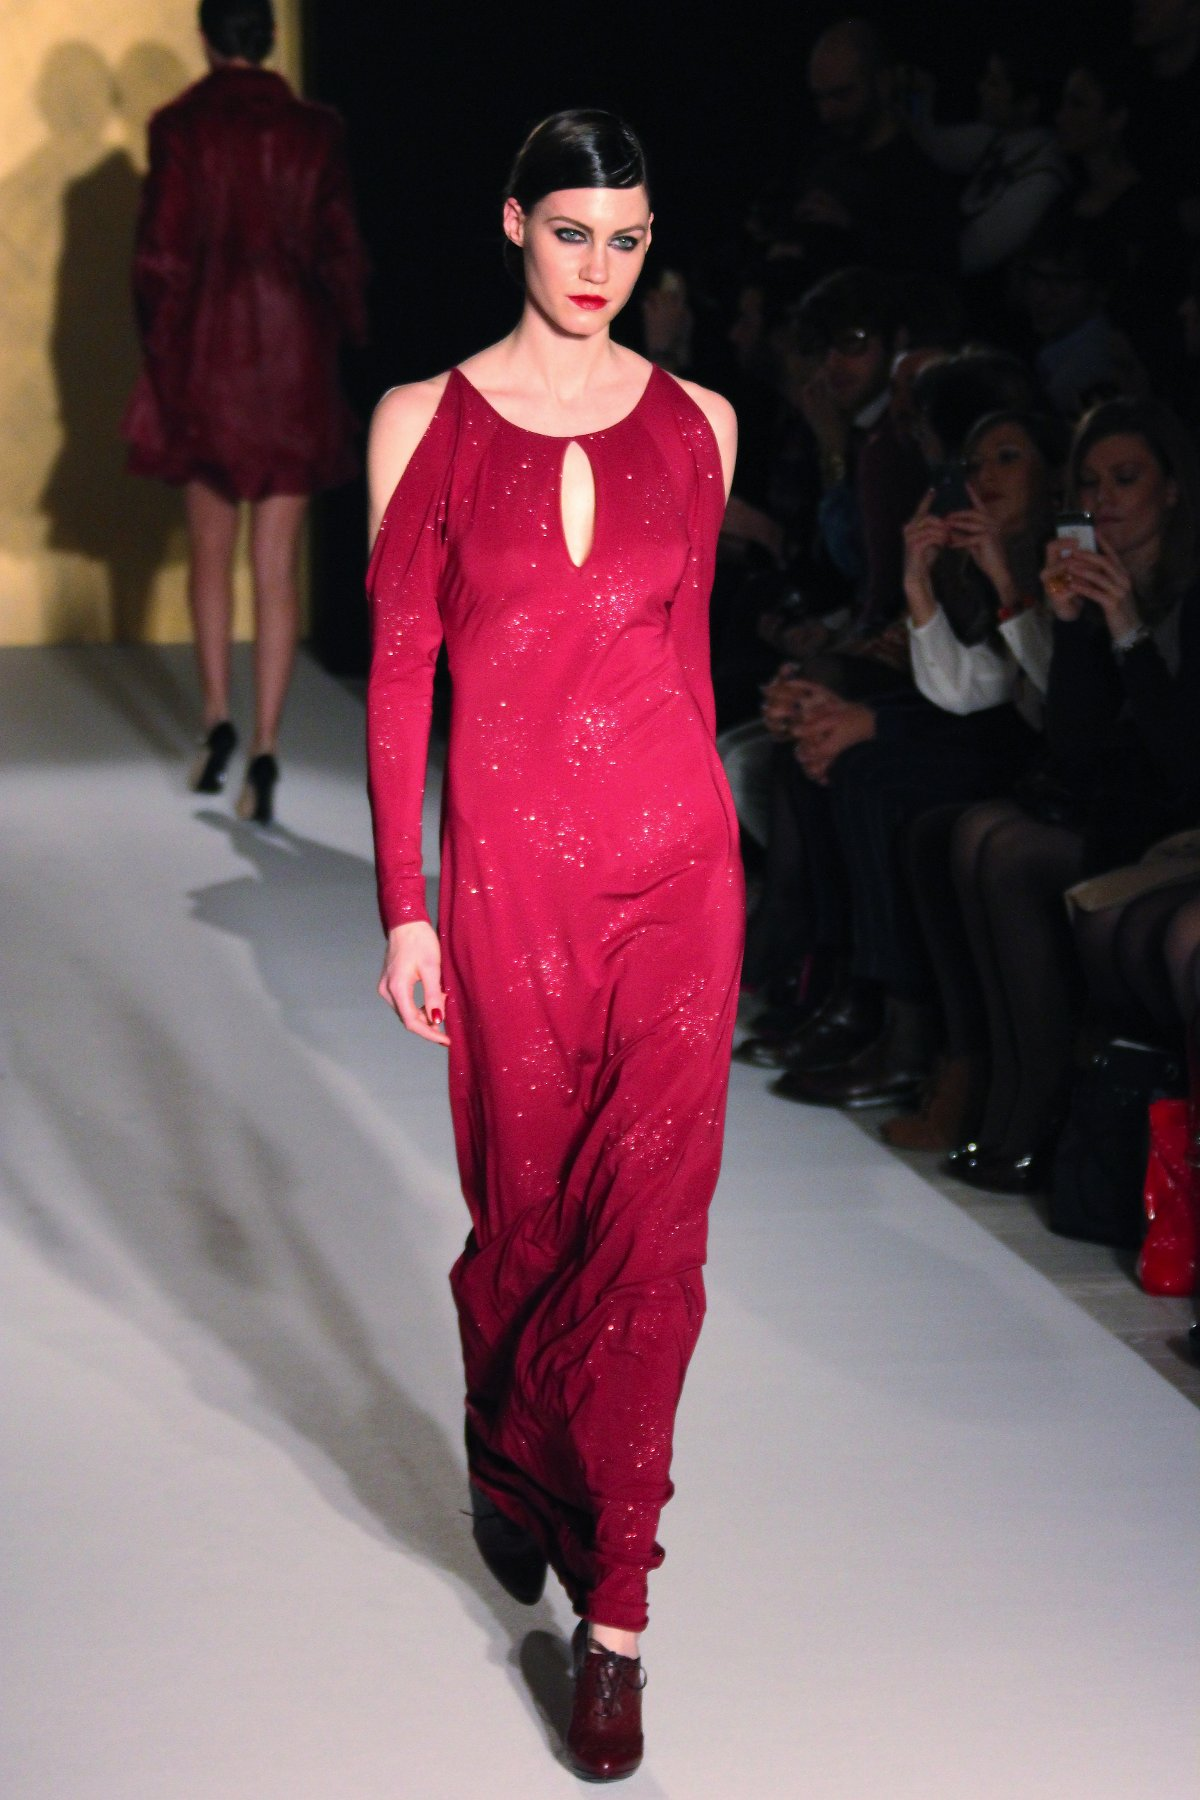 Catwalk Paola Frani Fall-Winter 2012-2013 Women's Collection  Fashion Show